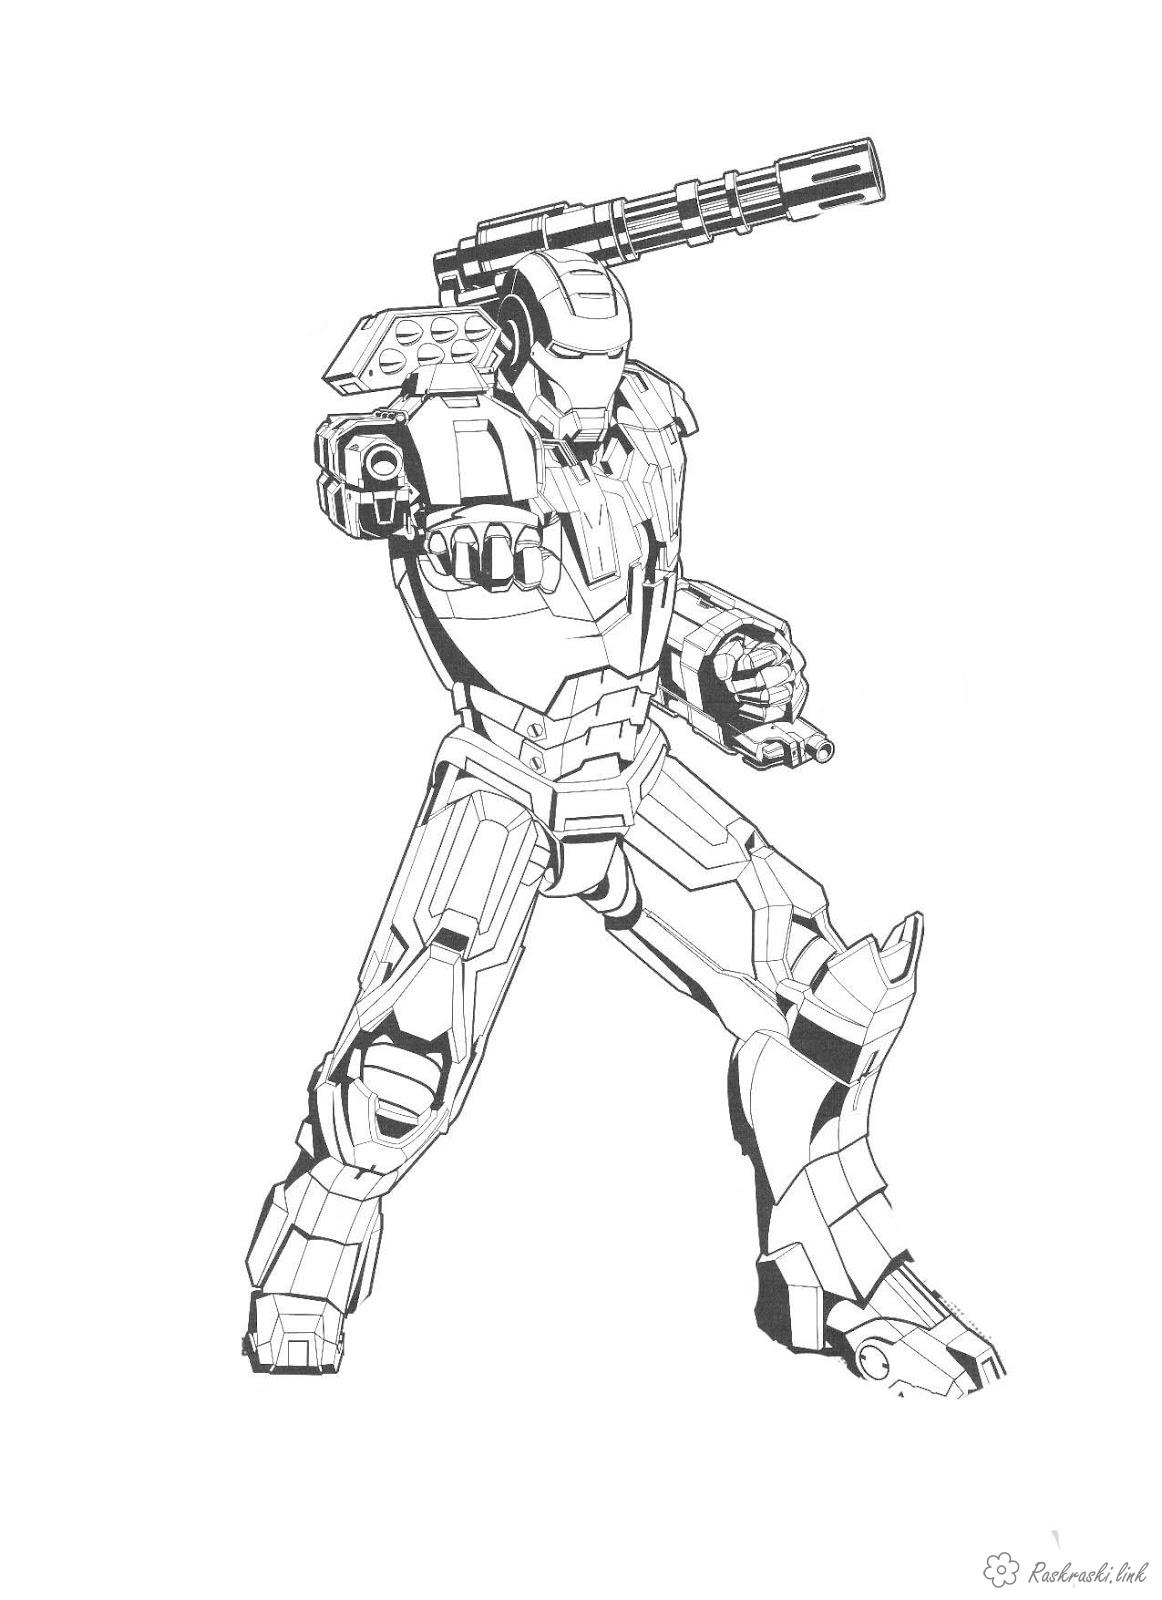 Coloring children coloring pages for children, iron man